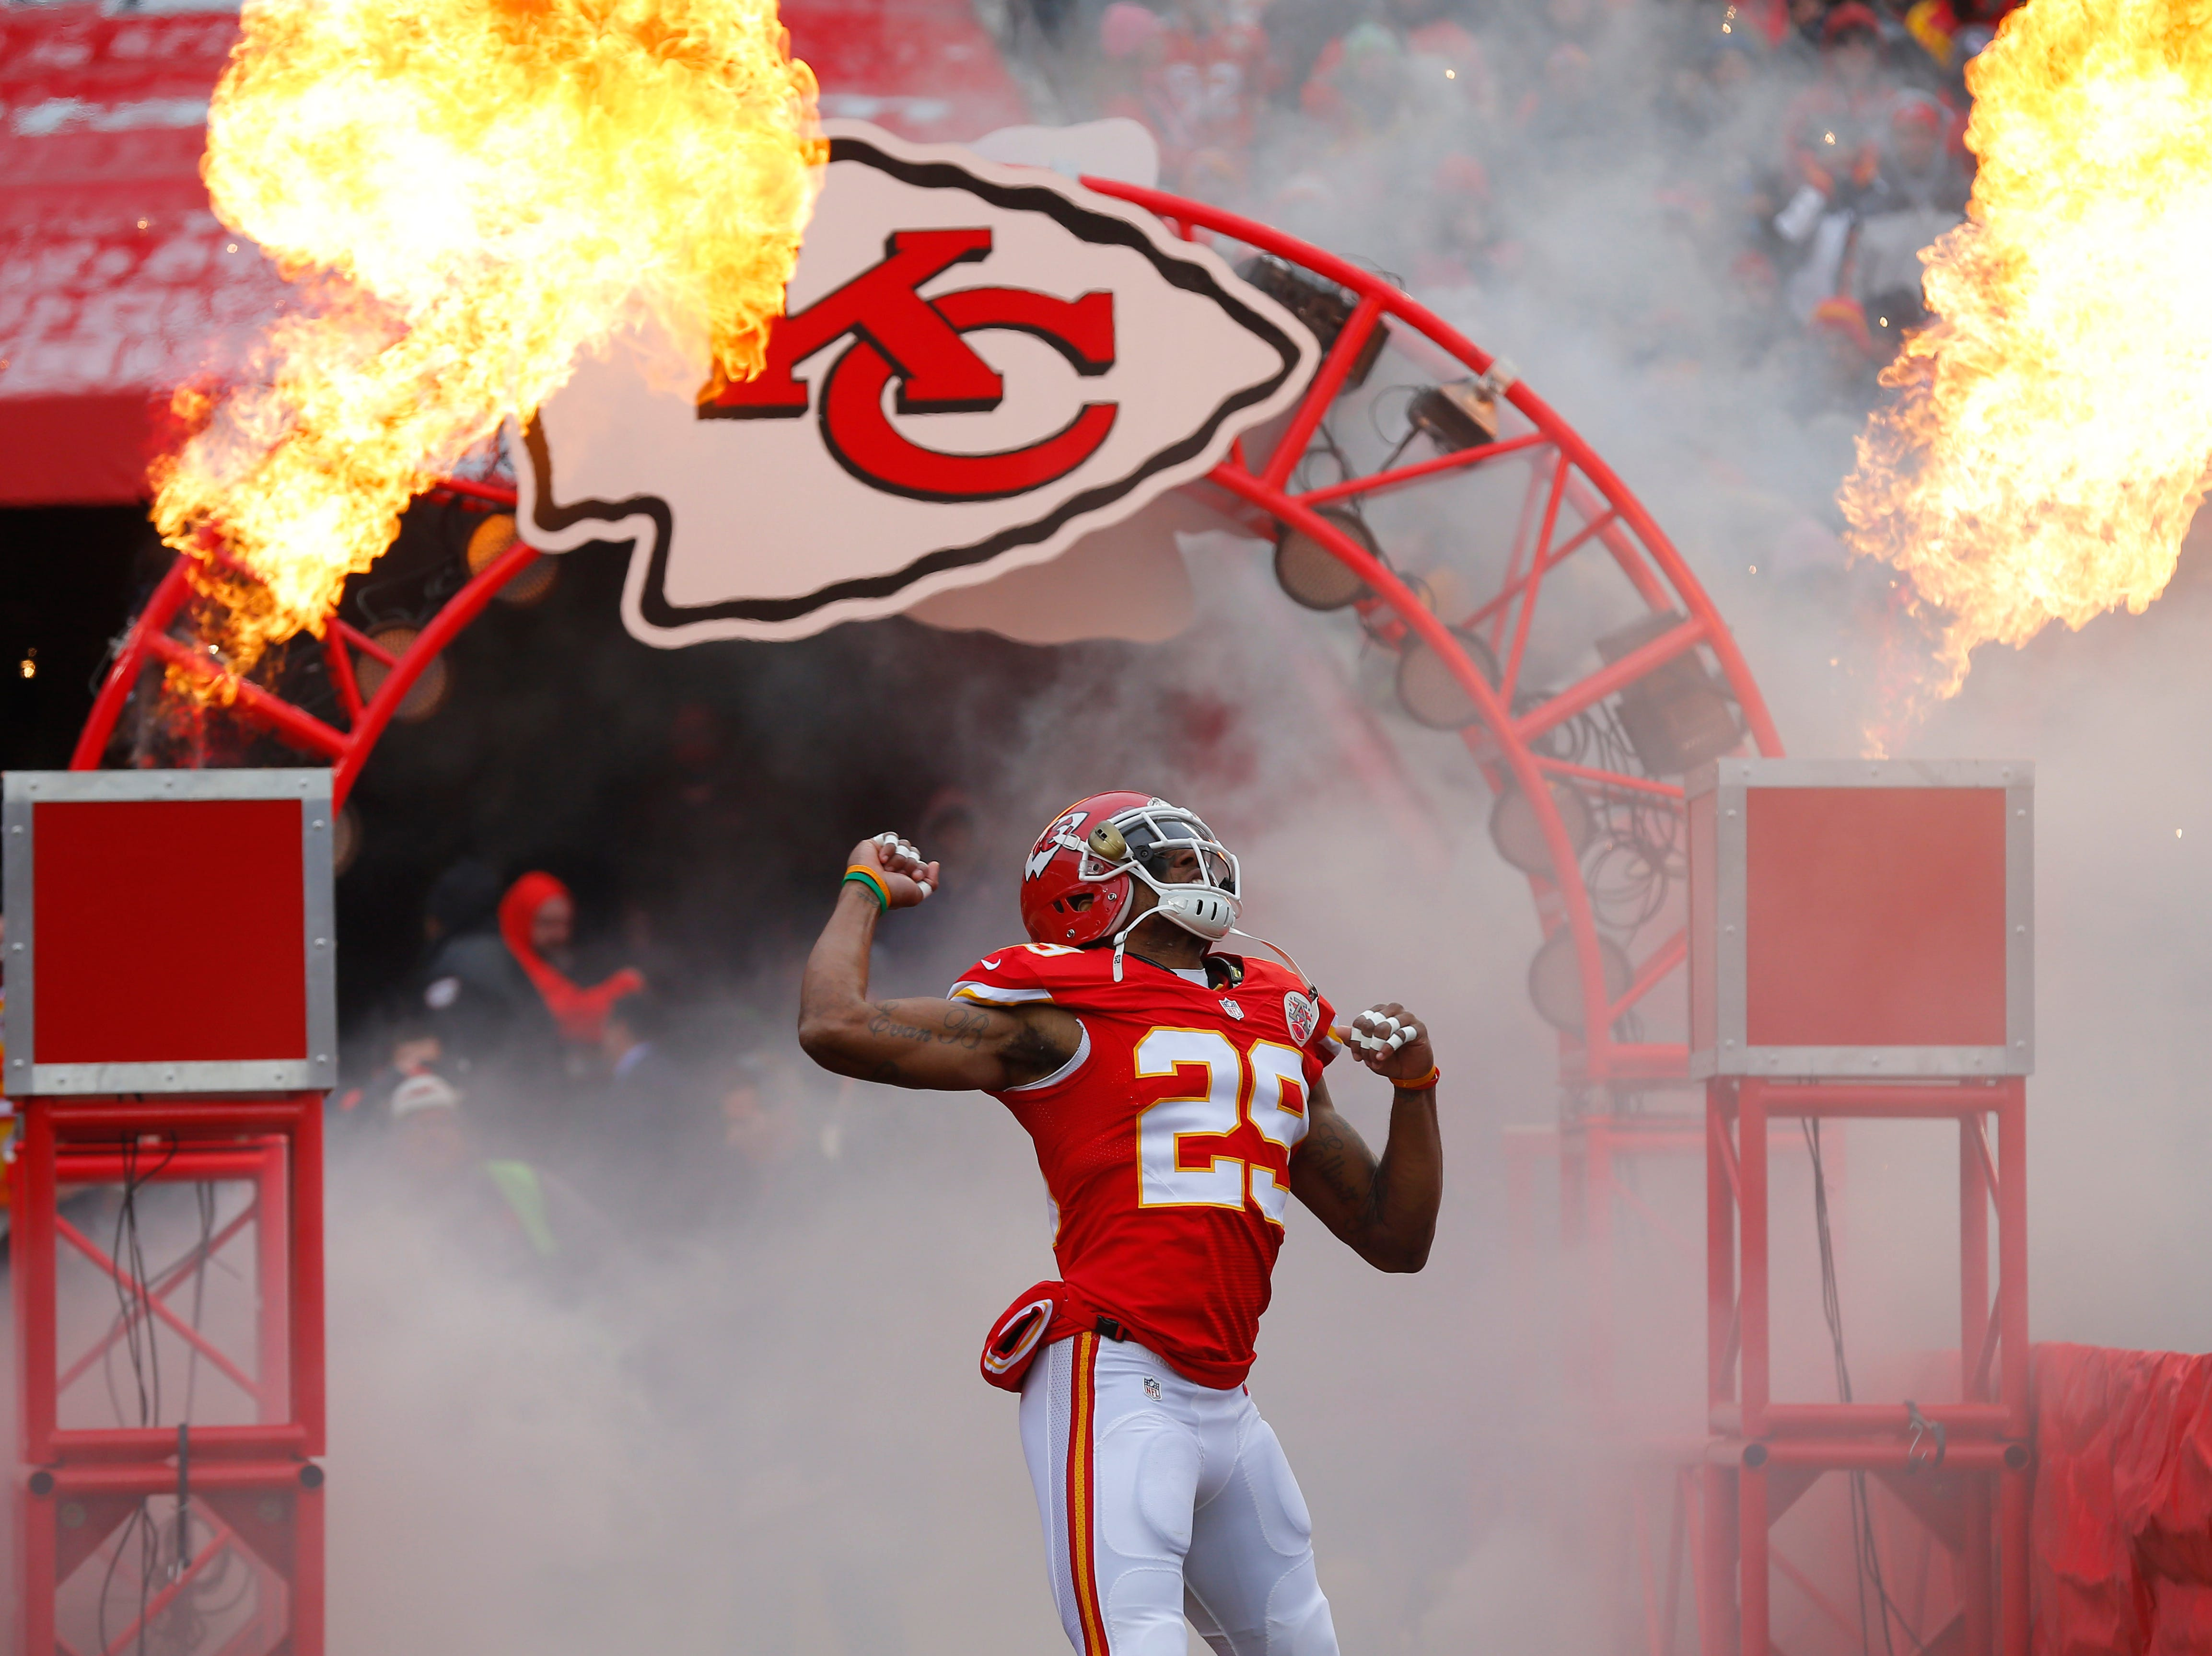 Kansas City Chiefs strong safety Eric Berry (29) enters the field prior to an NFL football game against the Seattle Seahawks in Kansas City, Mo., Sunday, Nov. 16, 2014.